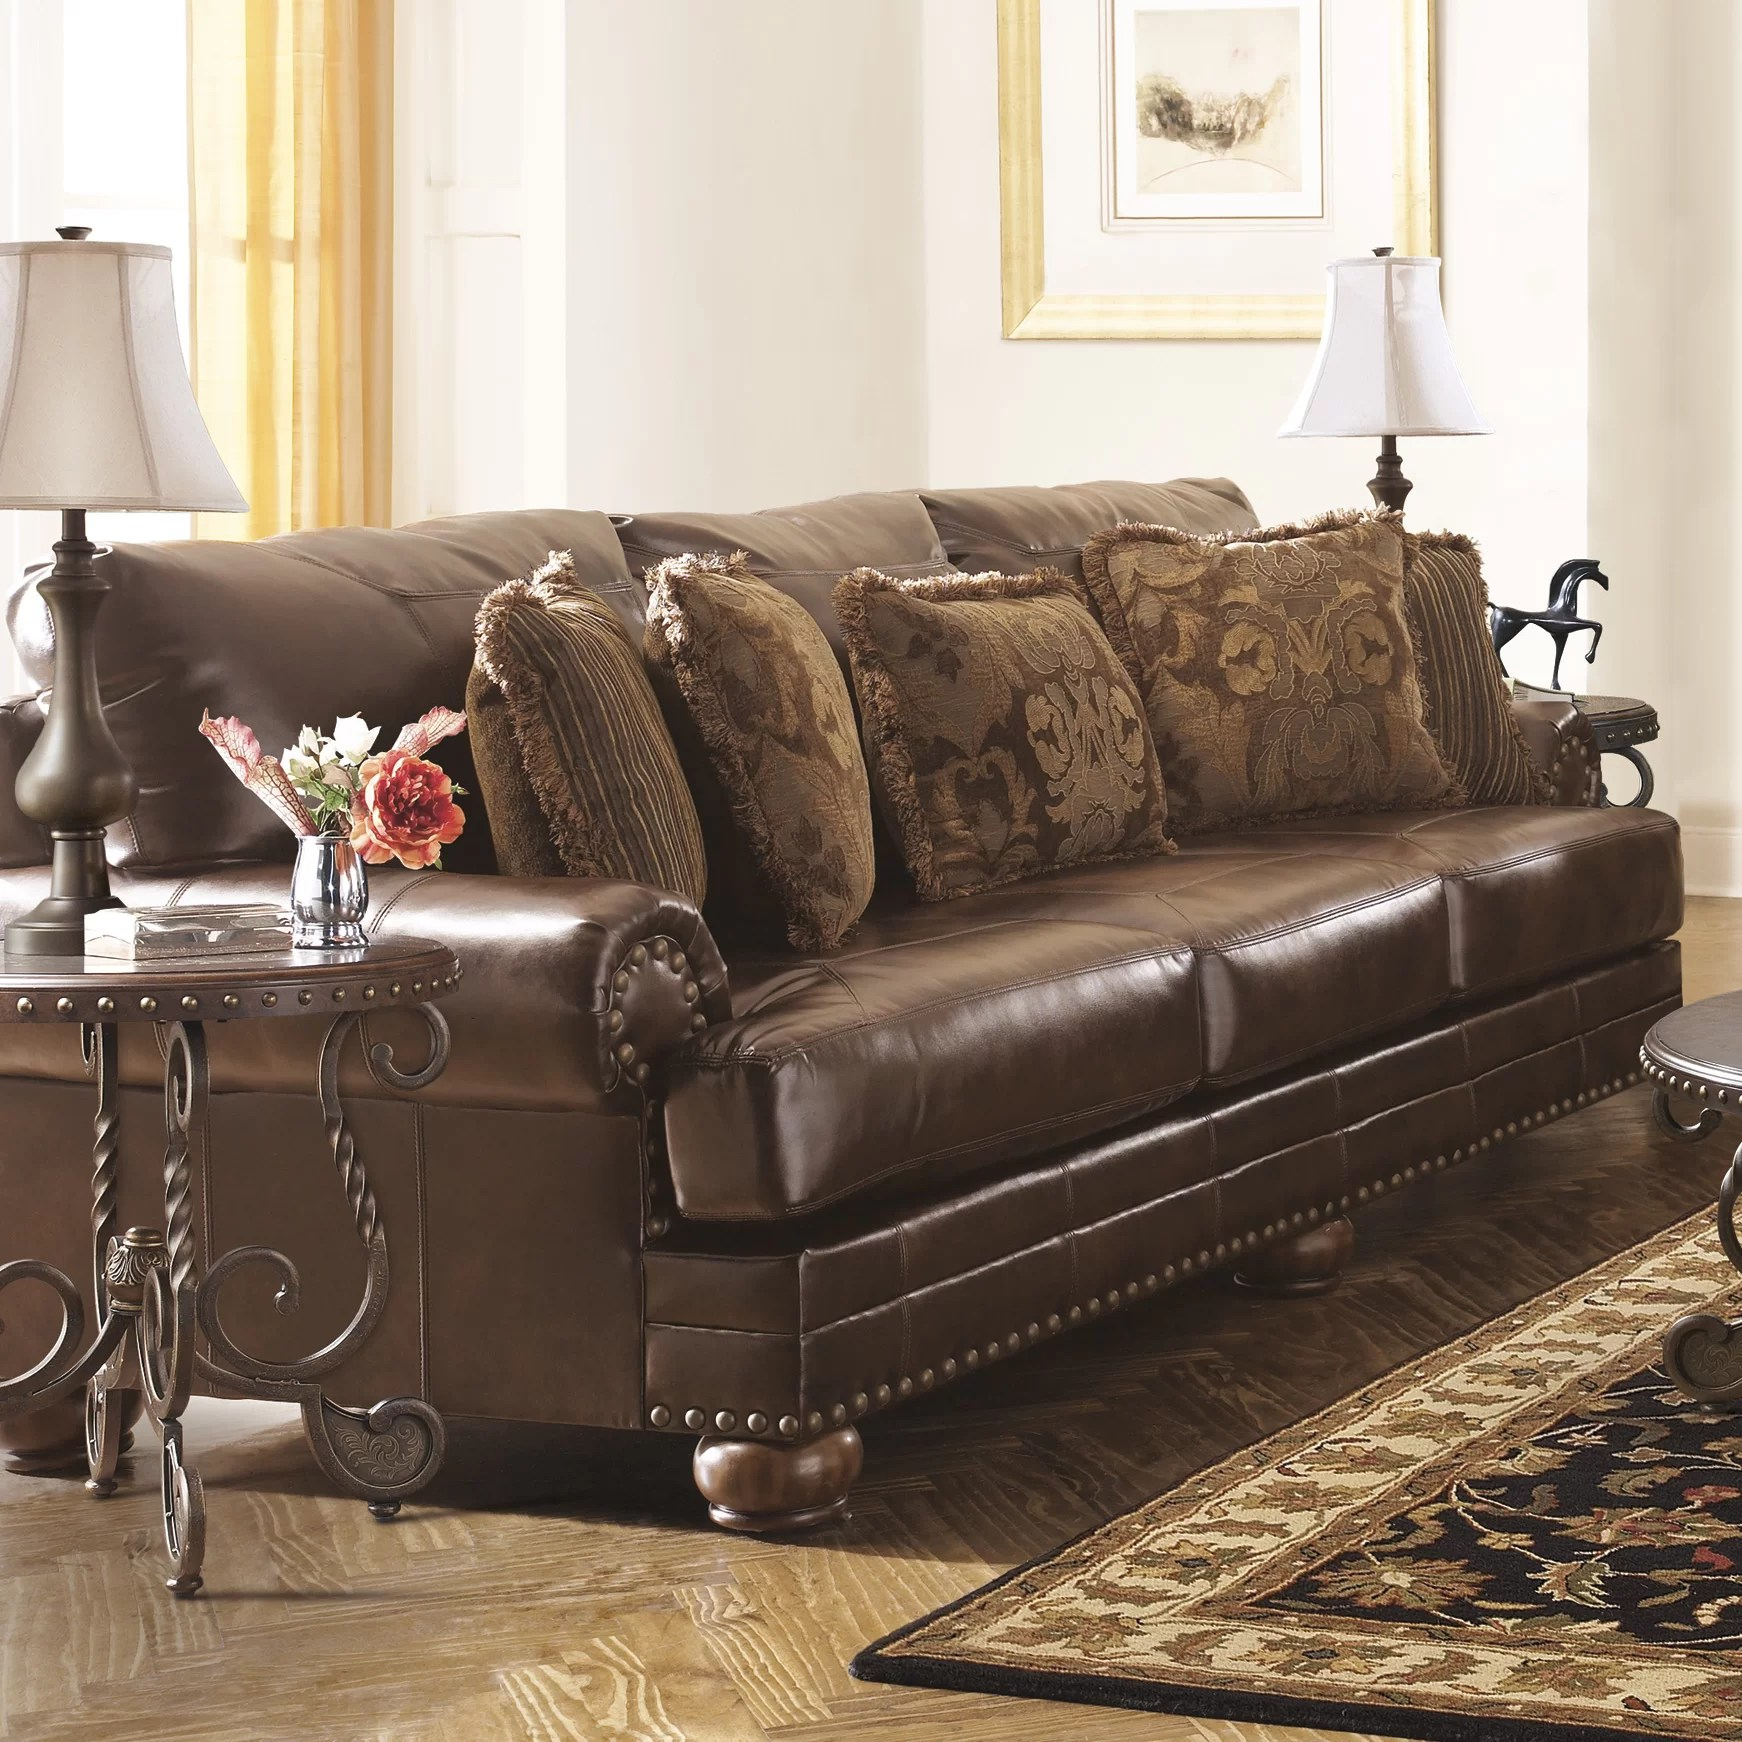 Ashley Furniture Leather Chair Signature Design By Ashley Leighton Leather Sofa And Reviews